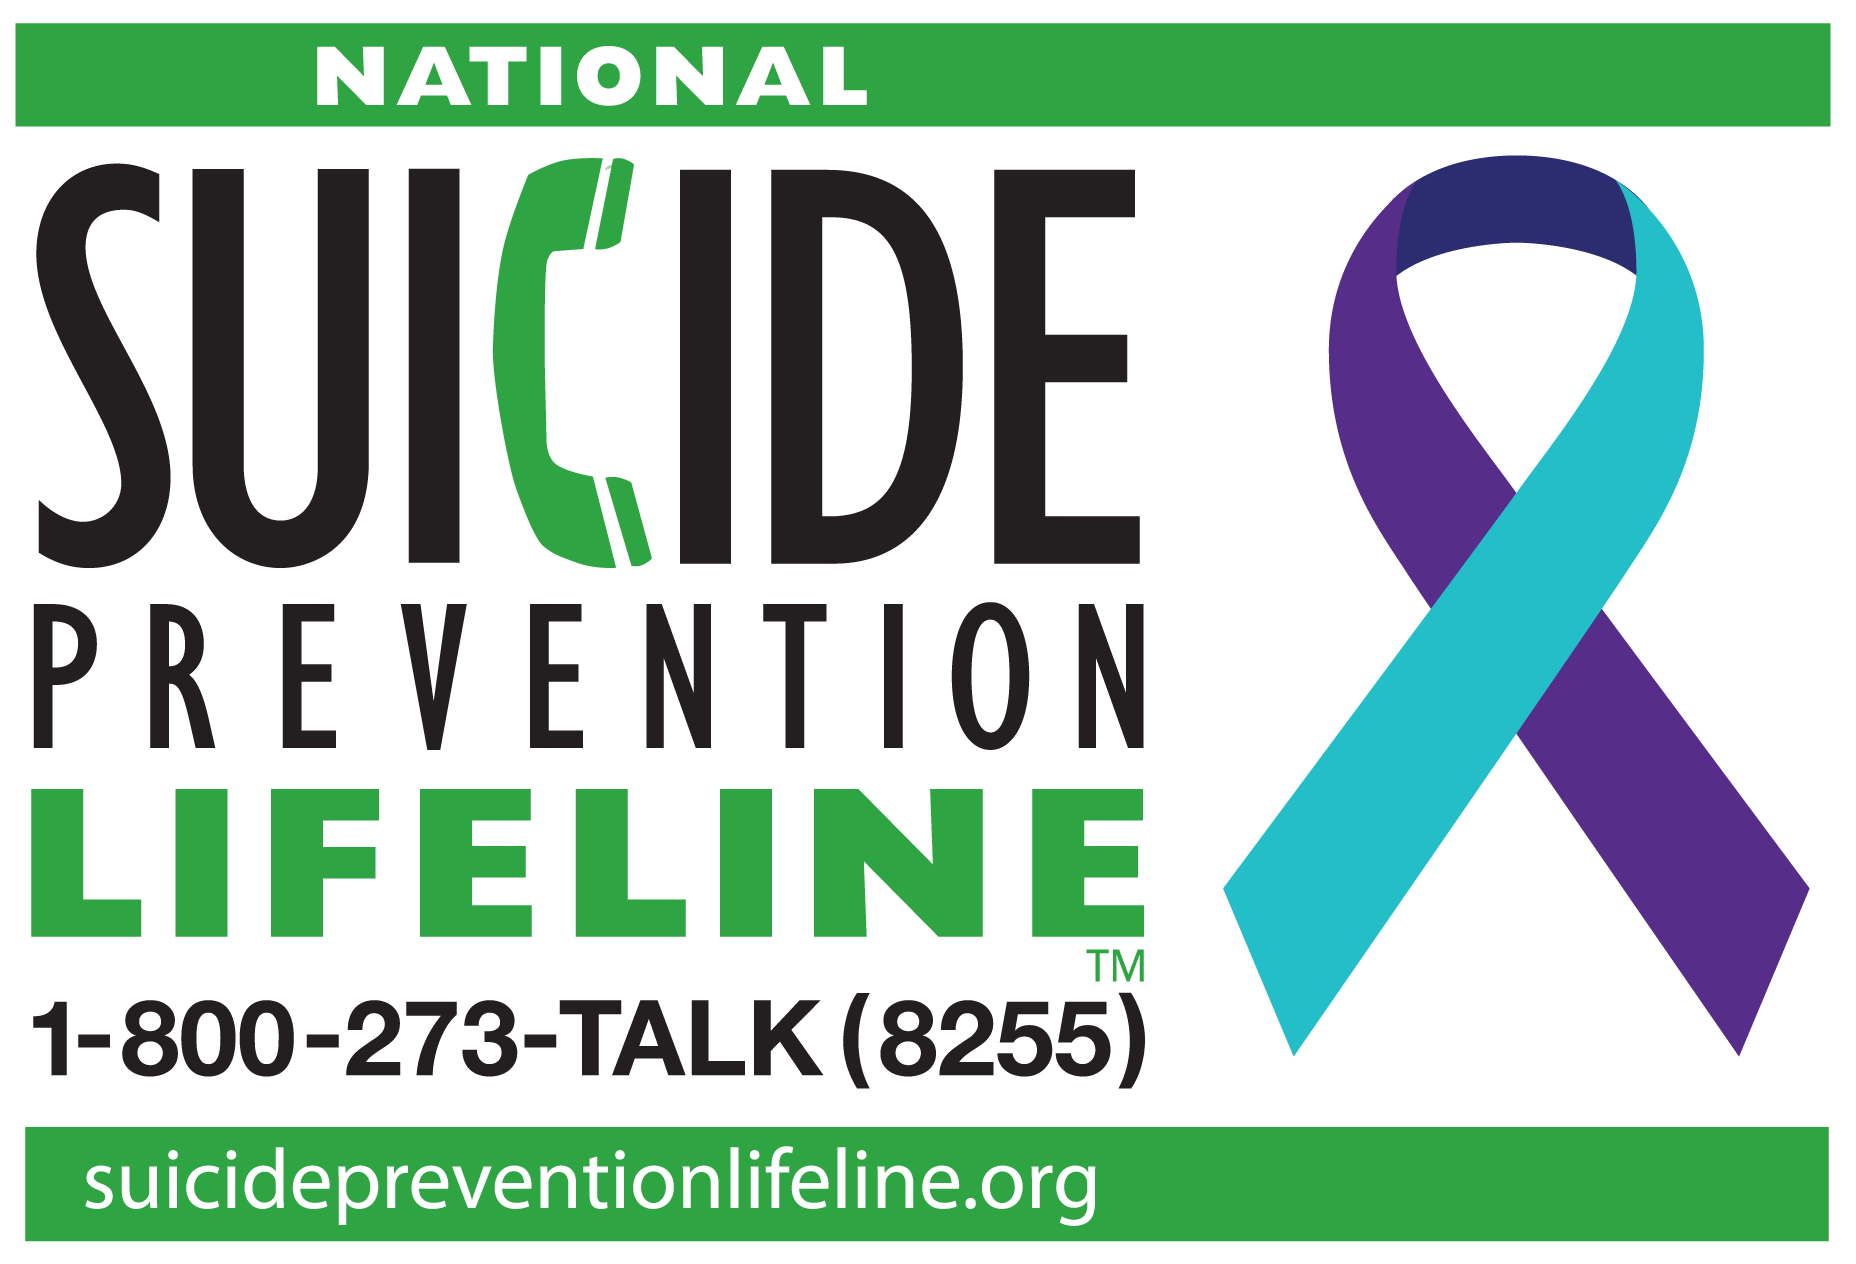 National SuicidePrevention Lifeline - We can all help prevent suicide.The Lifeline provides 24/7, free and confidential support for people in distress, prevention and crisis resources for you or your loved ones,and best practices for professionals.